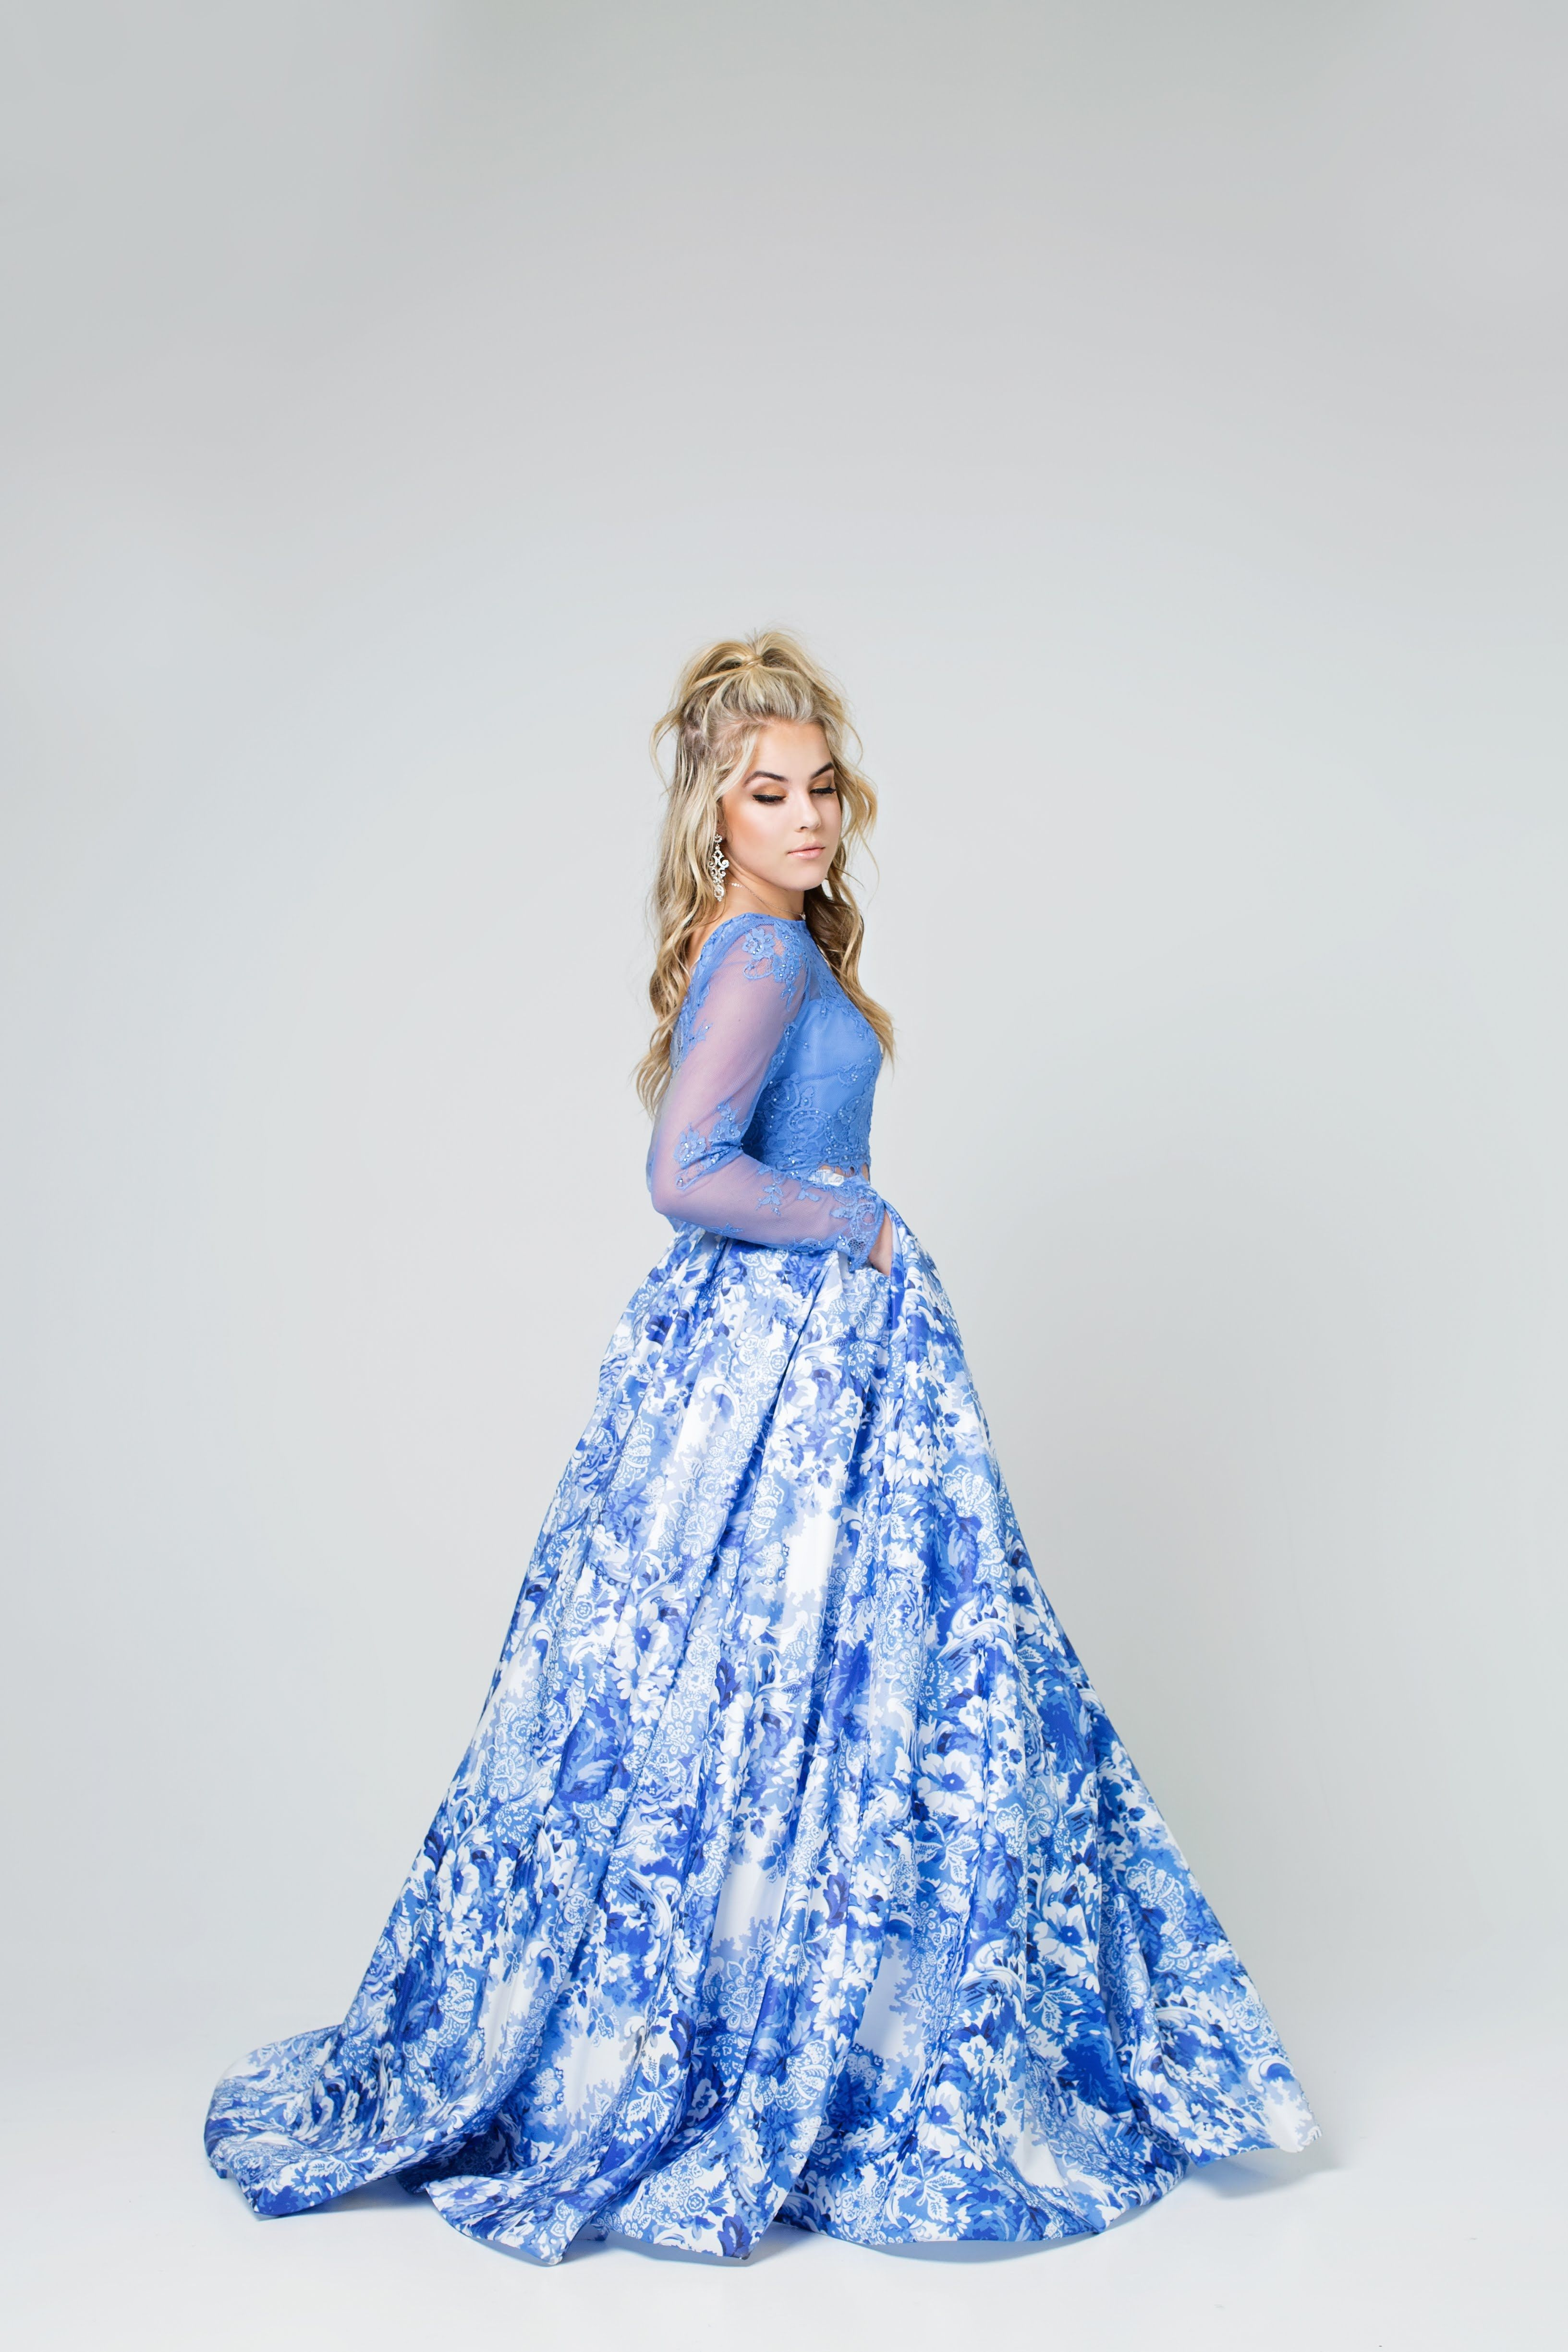 Sherri hill prints light blue periwinkle print ballgown piece with